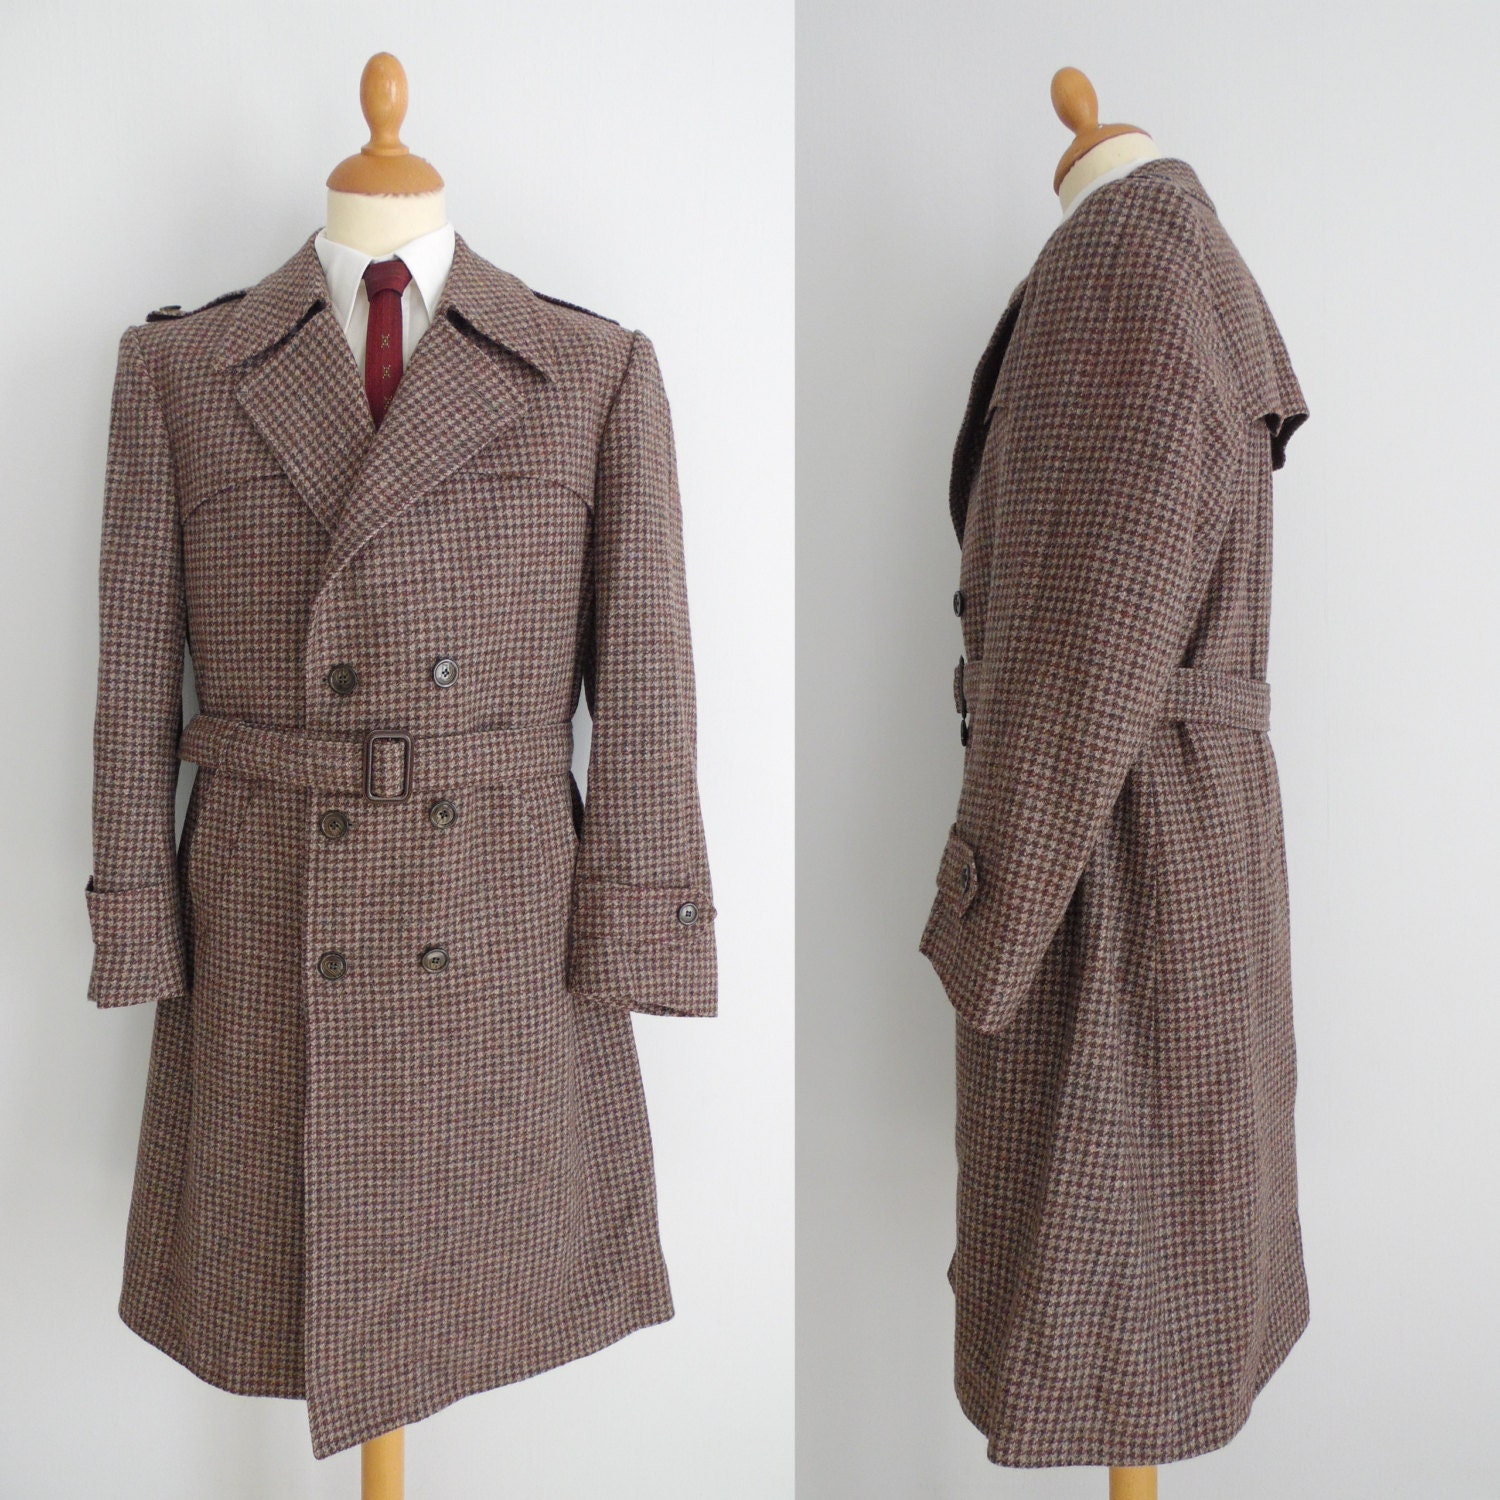 Tweed Trench Coat - Tradingbasis